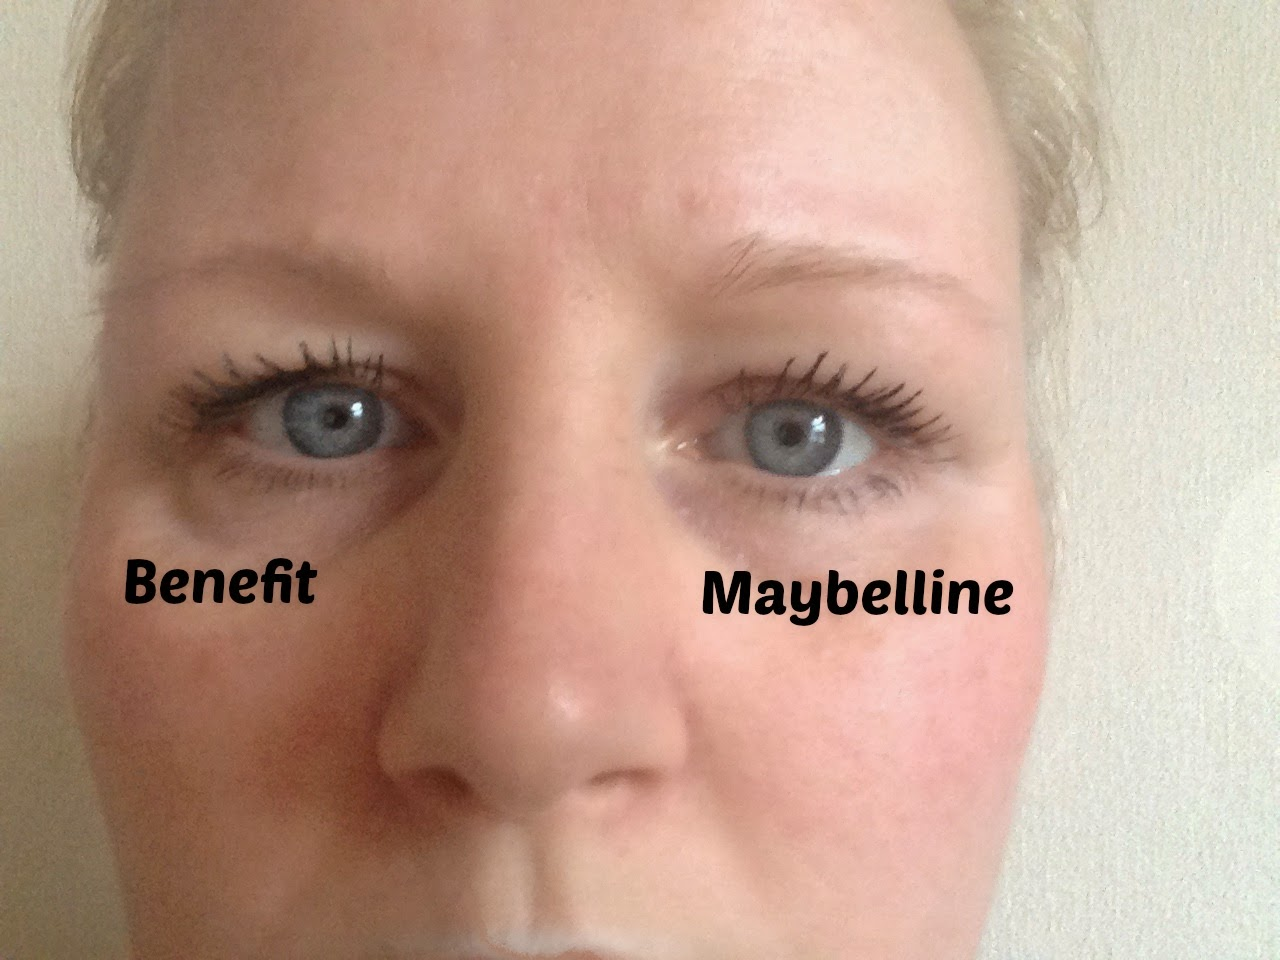 a2c29b44adb ... Instagram followers chose as the high end product was in actual fact  the Maybelline Lash Sensational mascara and the left was the Benefit Roller  Lash.